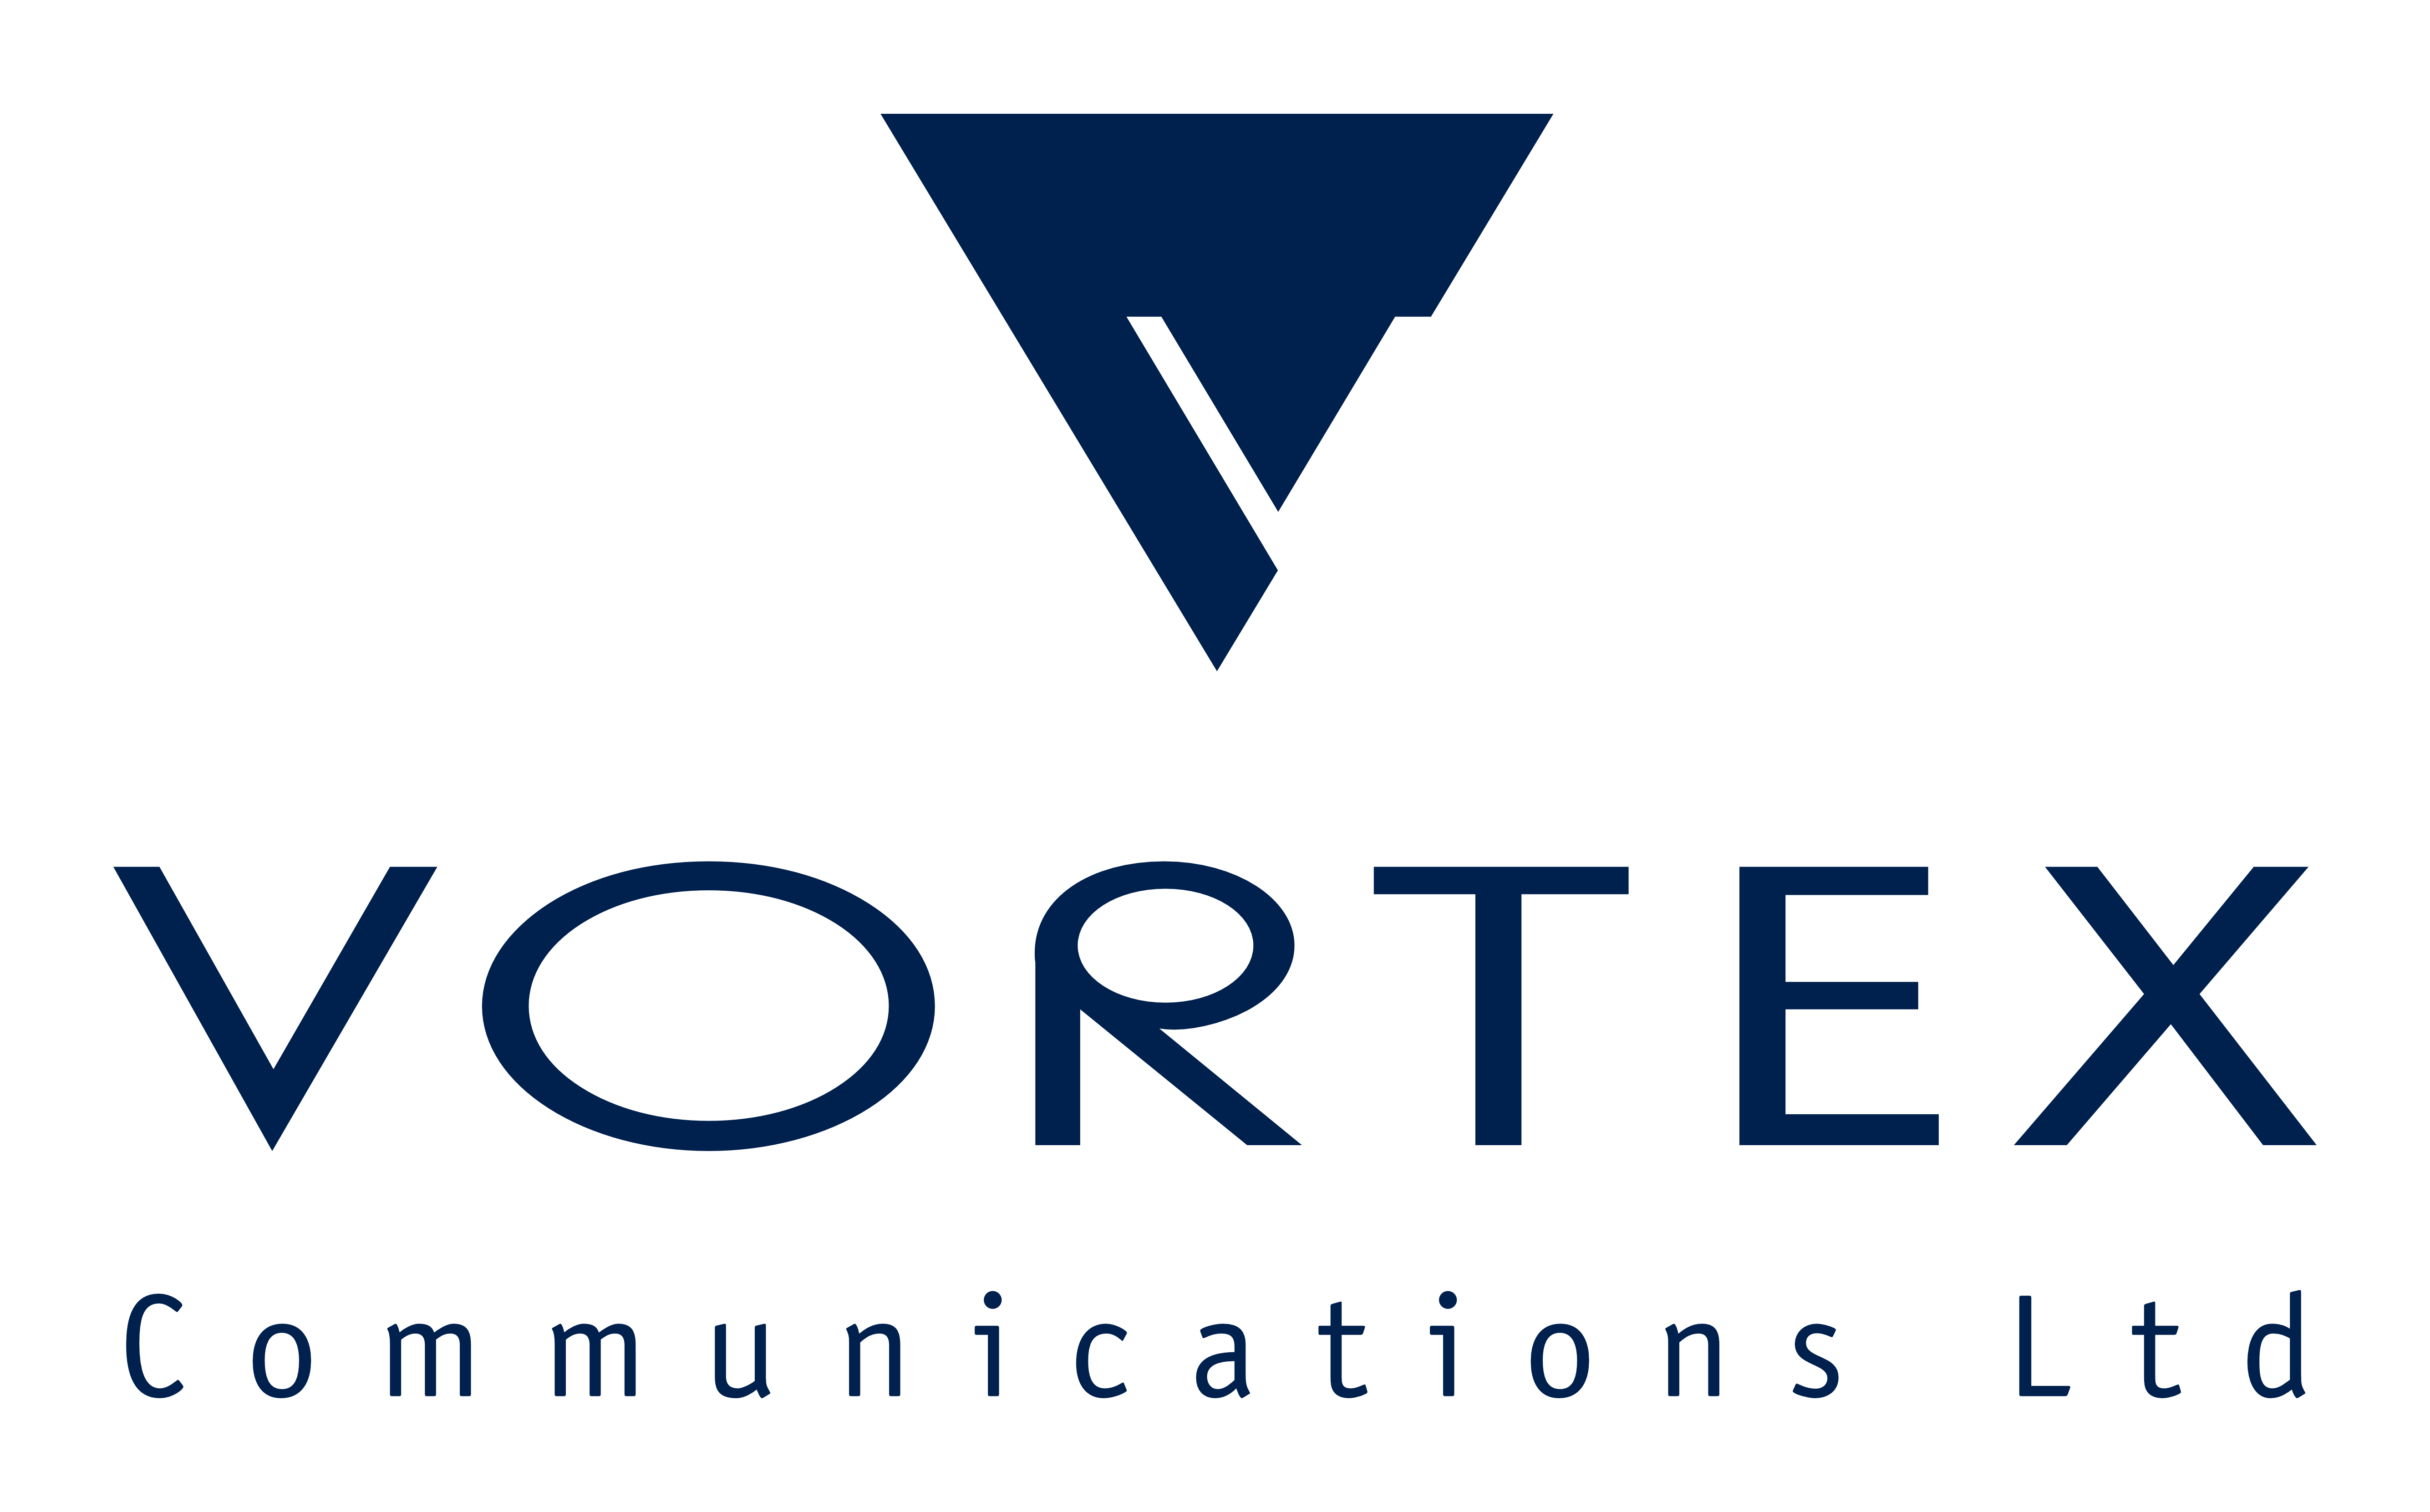 Vortex Communications logo